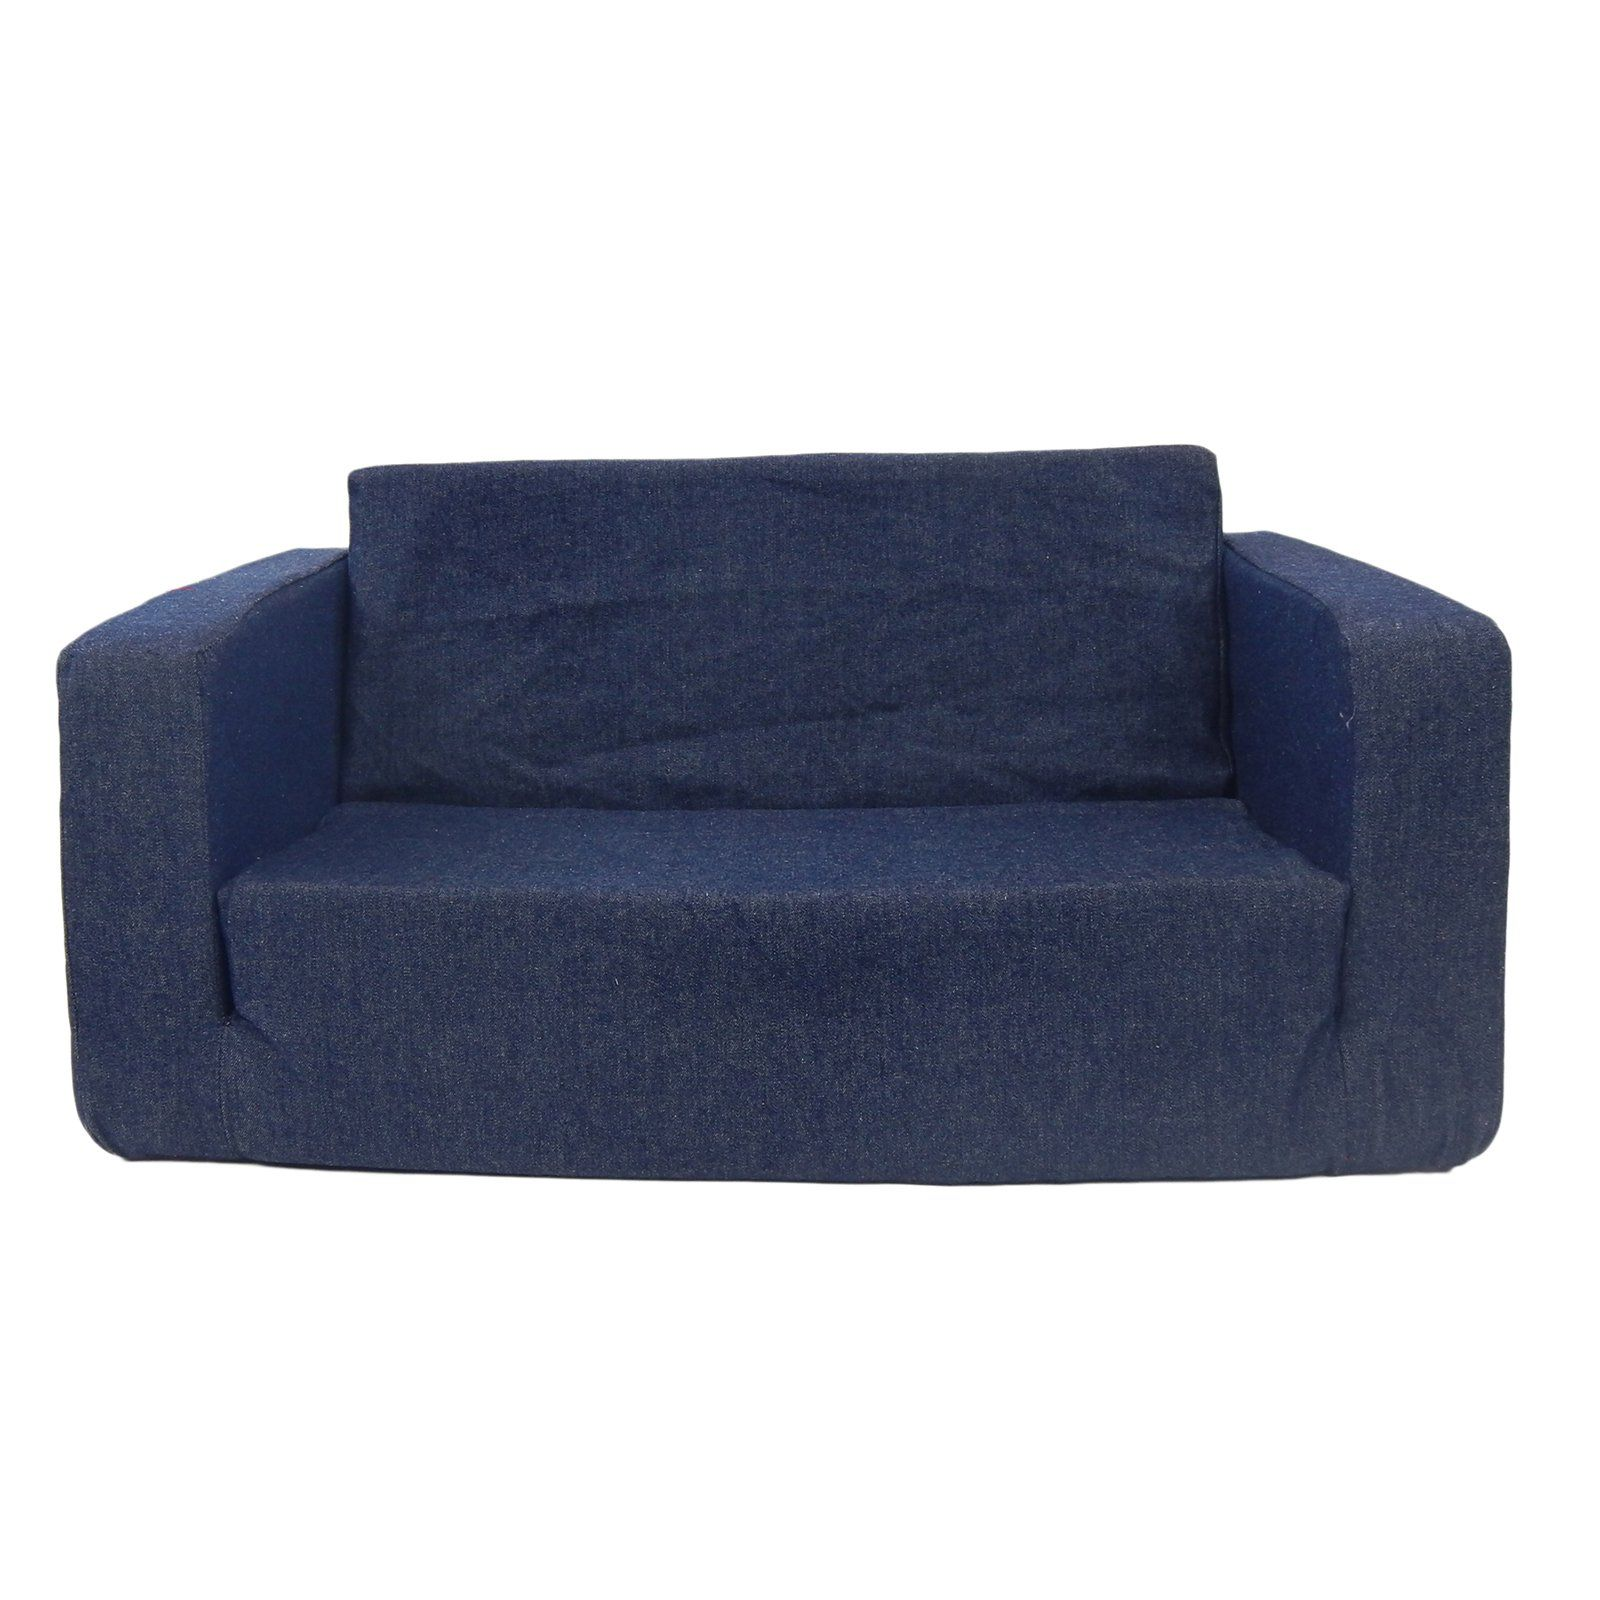 Fun Furnishings Micro Toddler Flip Sofa Denim Kids Sofa Toddler